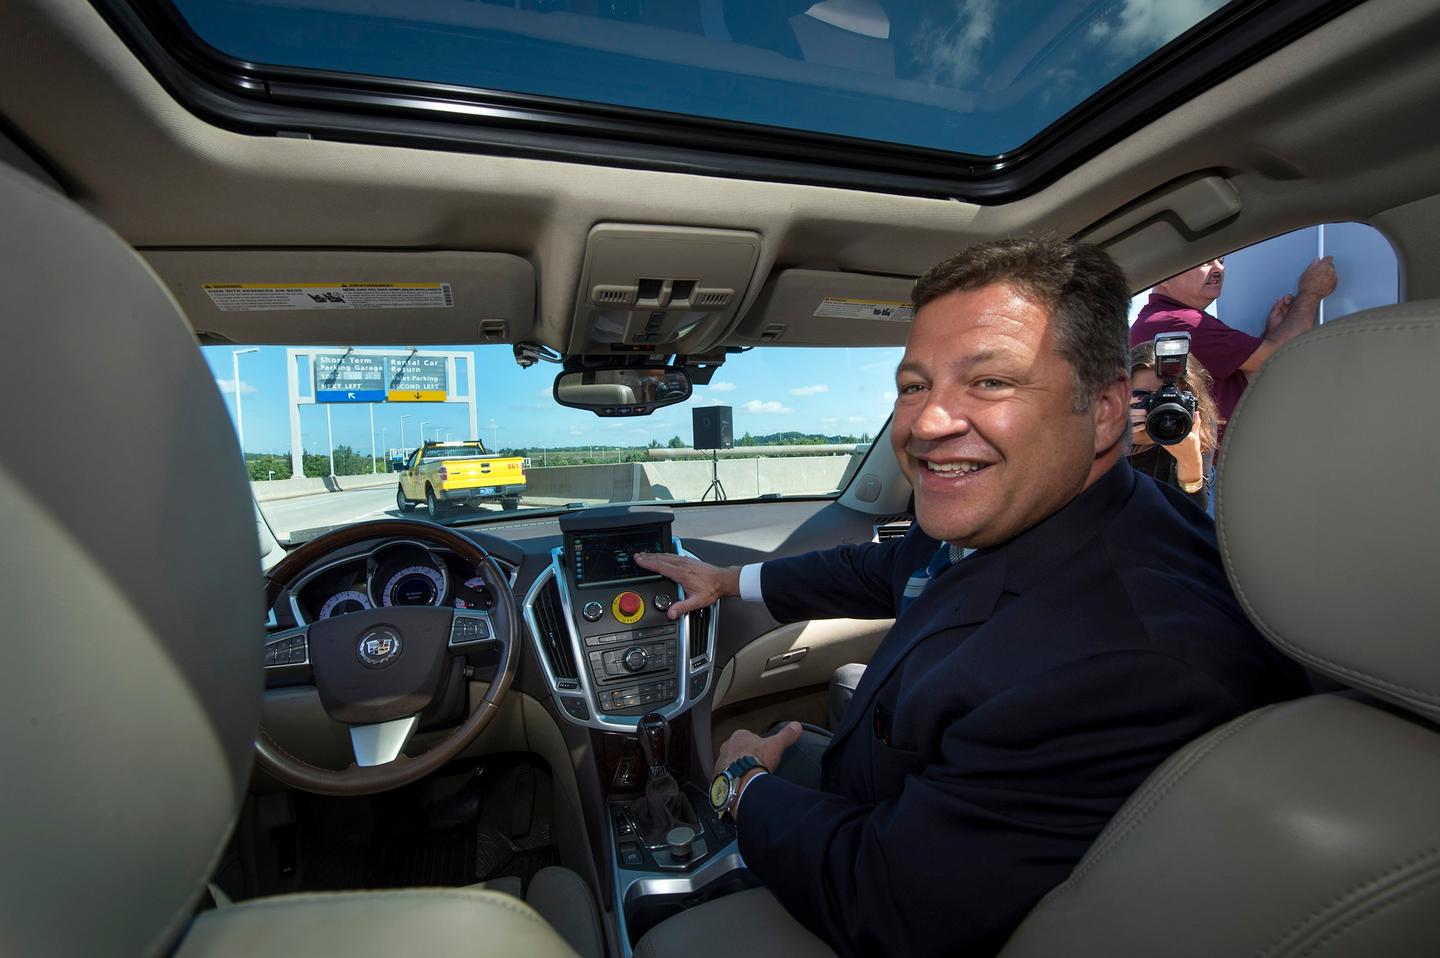 U.S. Rep. Bill Shuster (R-Pa) went on a test drive of the fully-autonomous Cadillac SRX